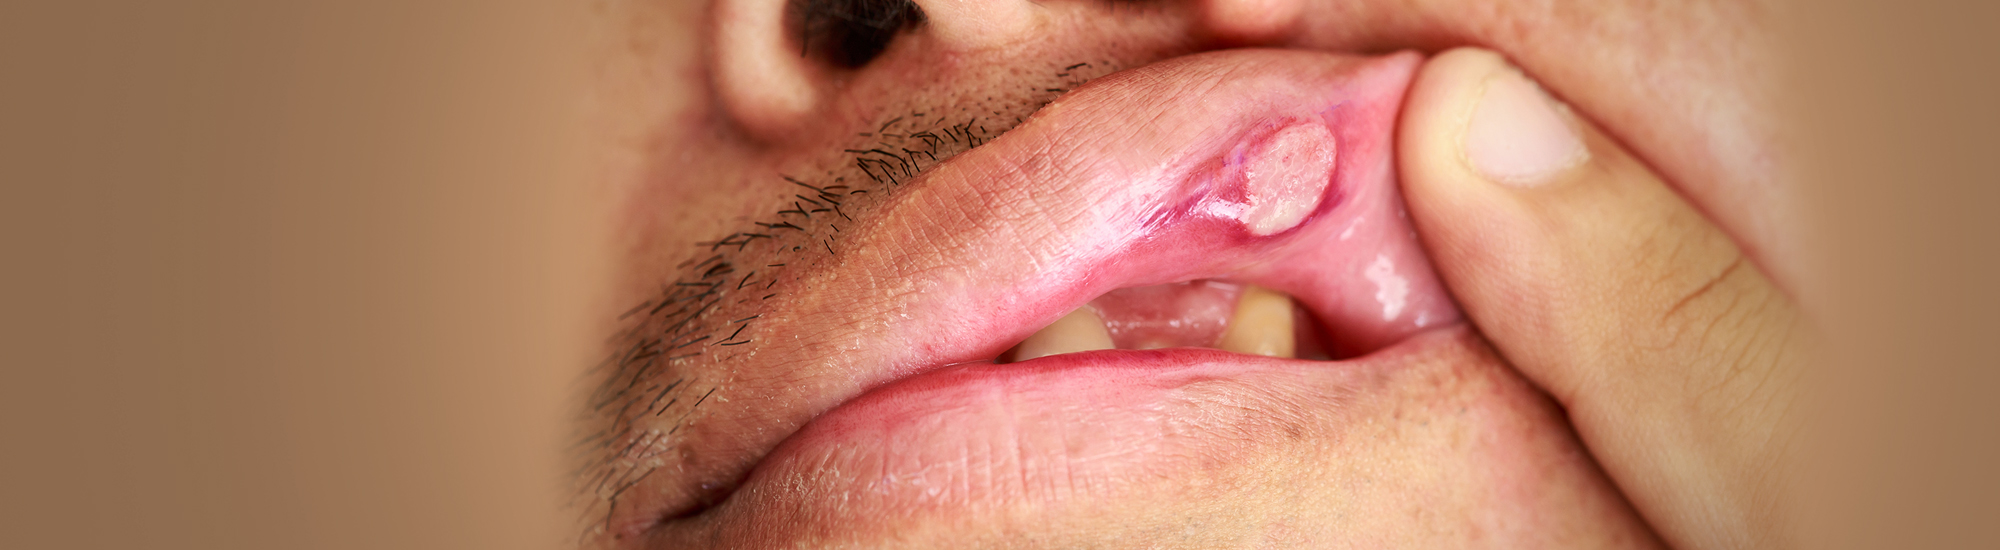 Ayurvedic treatment for Canker sores-mouth ulcers